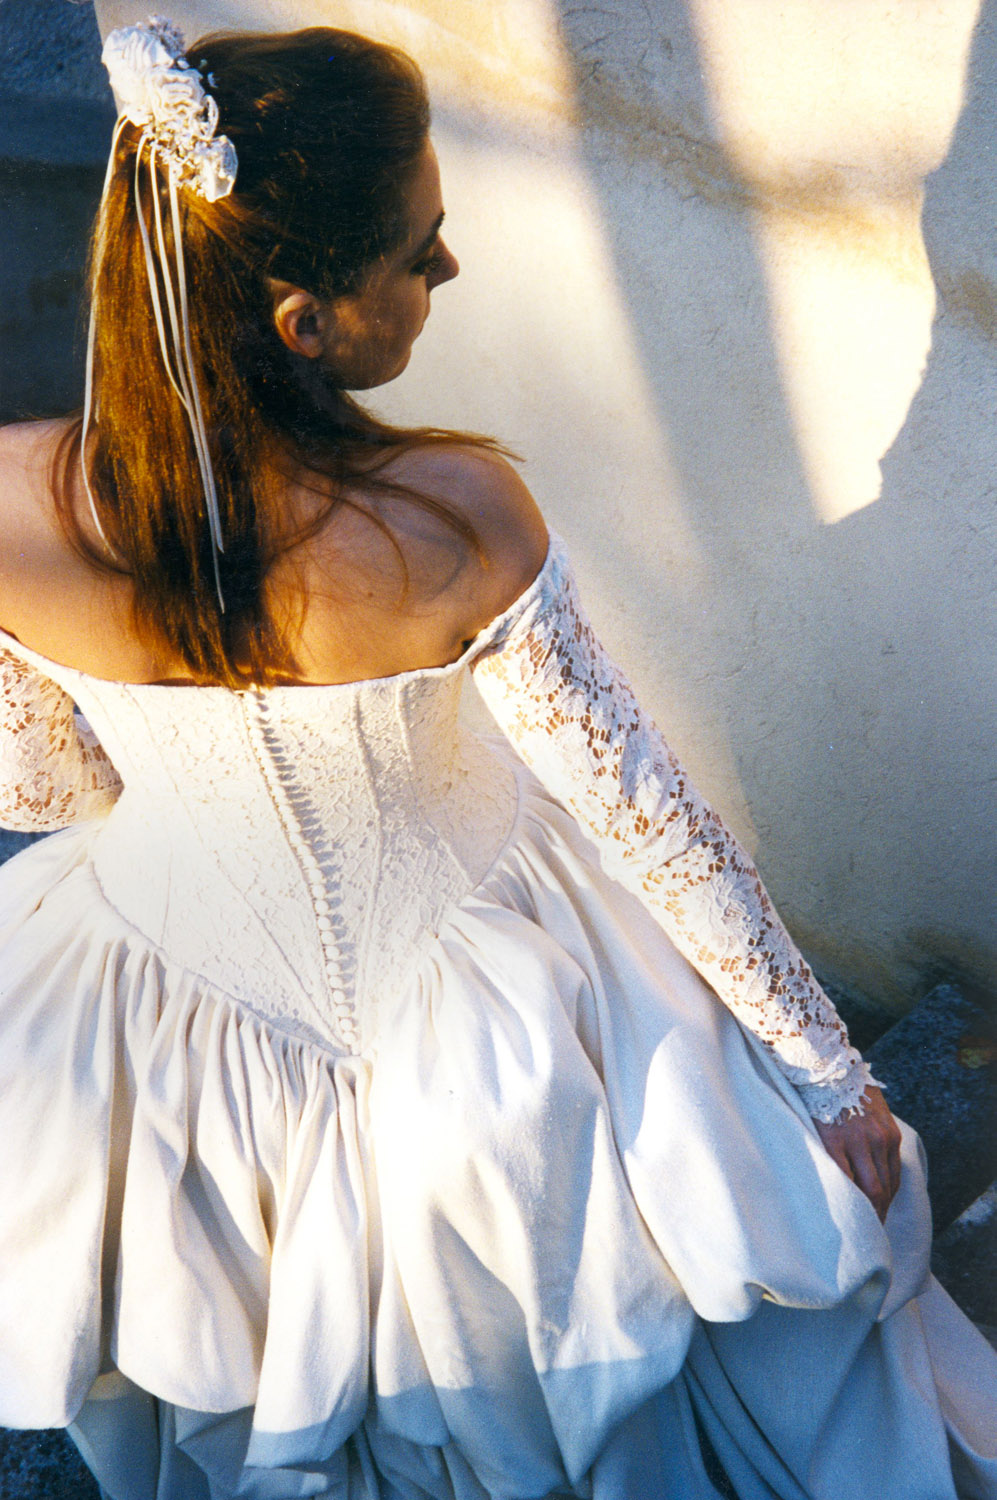 creatrice-quiquilamothe-robe-mariee-princesse-aix-en-provence-bustier-couture-boutons-dos-reine-marg